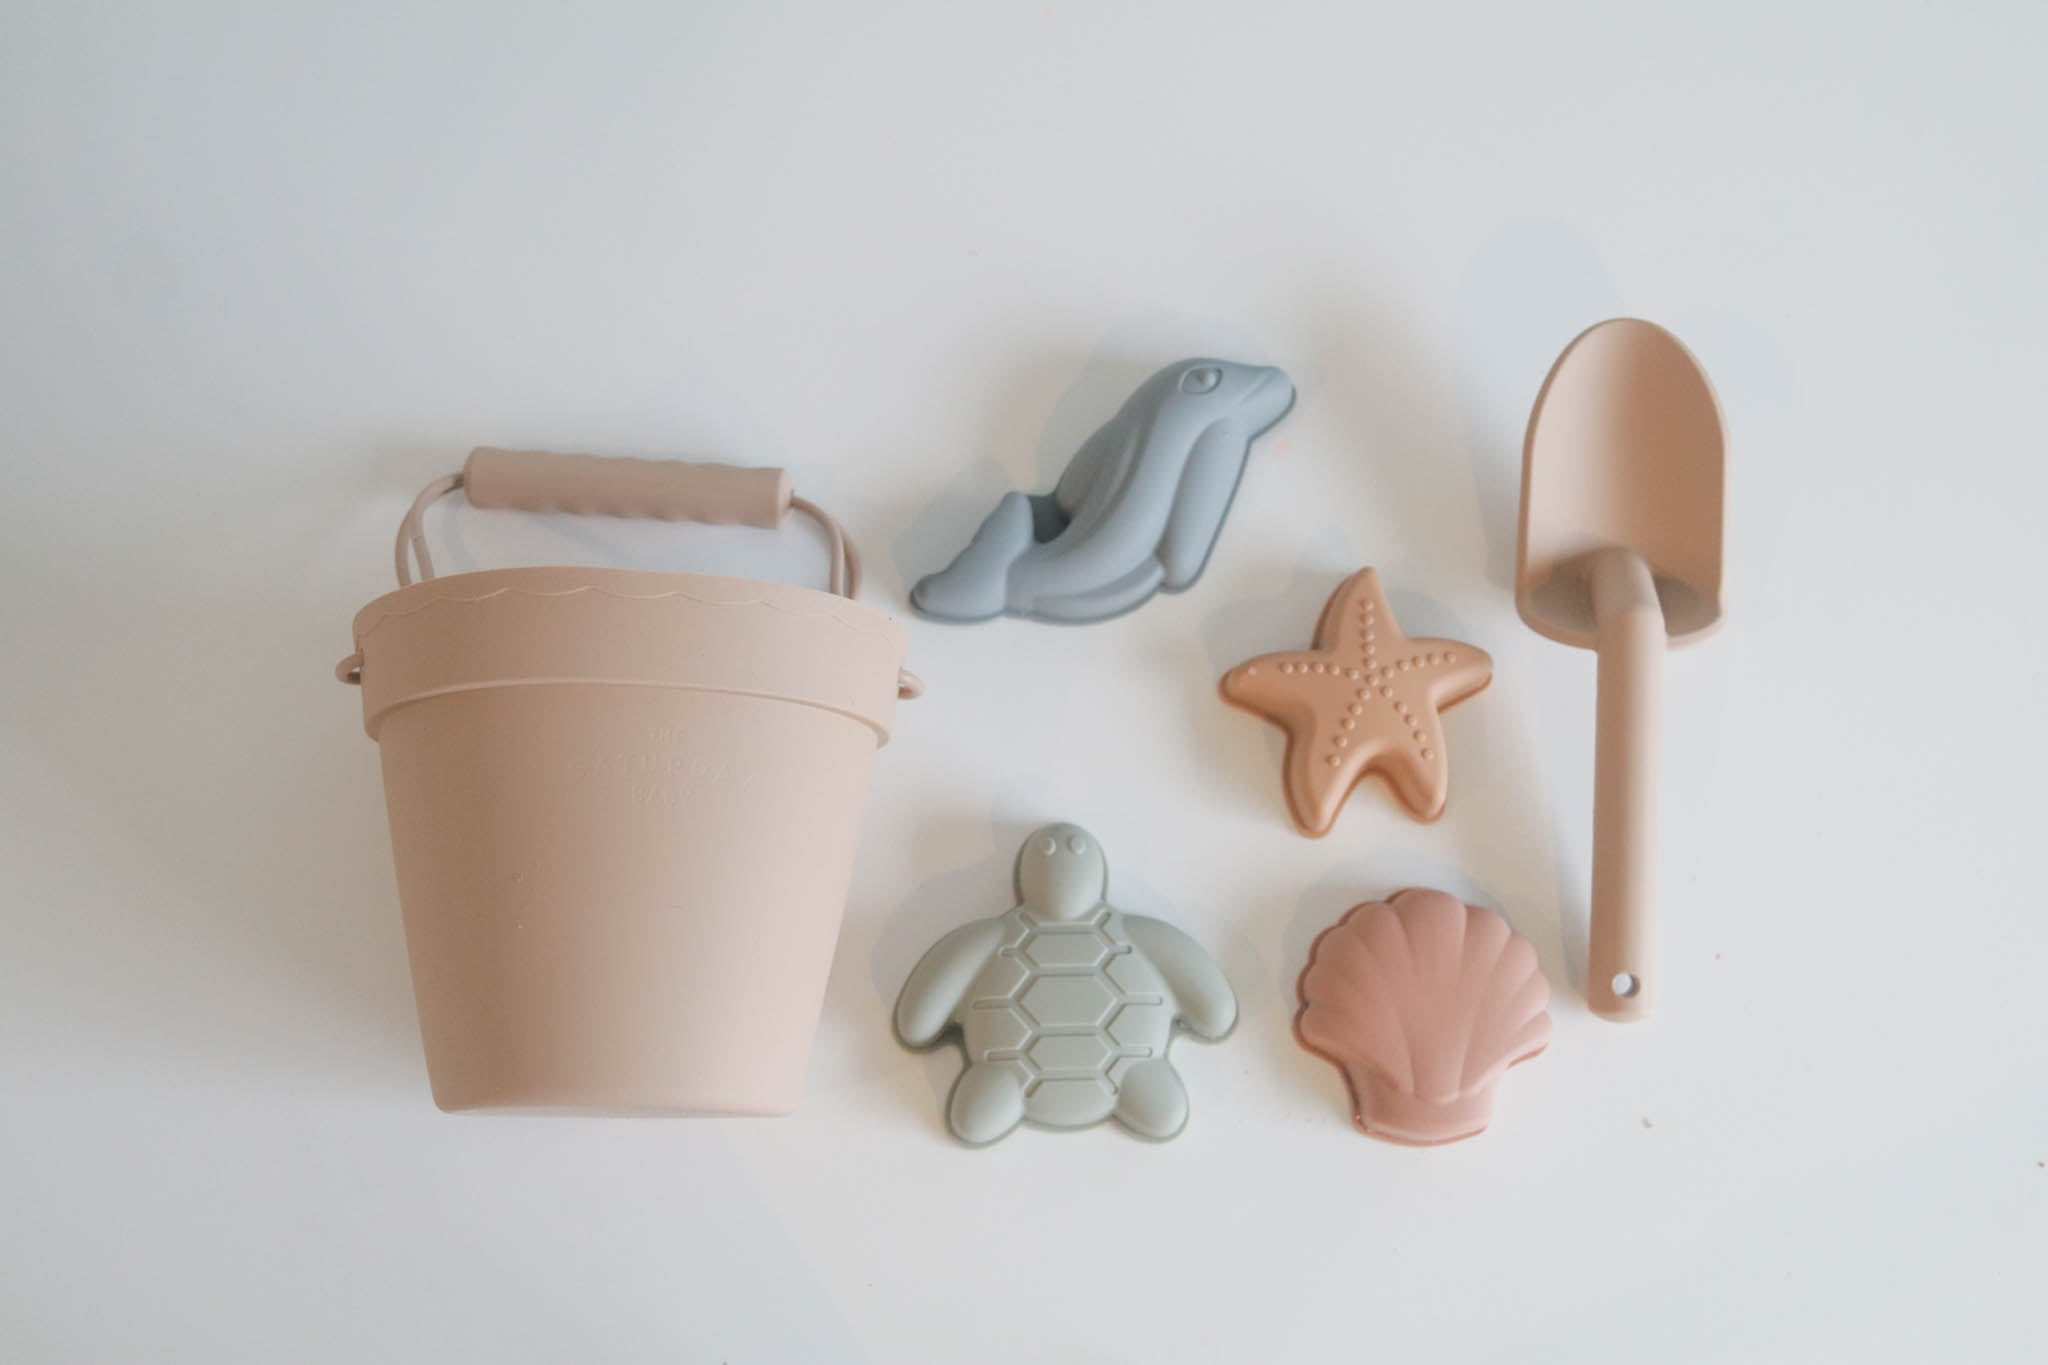 PREORDER The Saturday Baby Beach Toy Set - Early June Ship Date